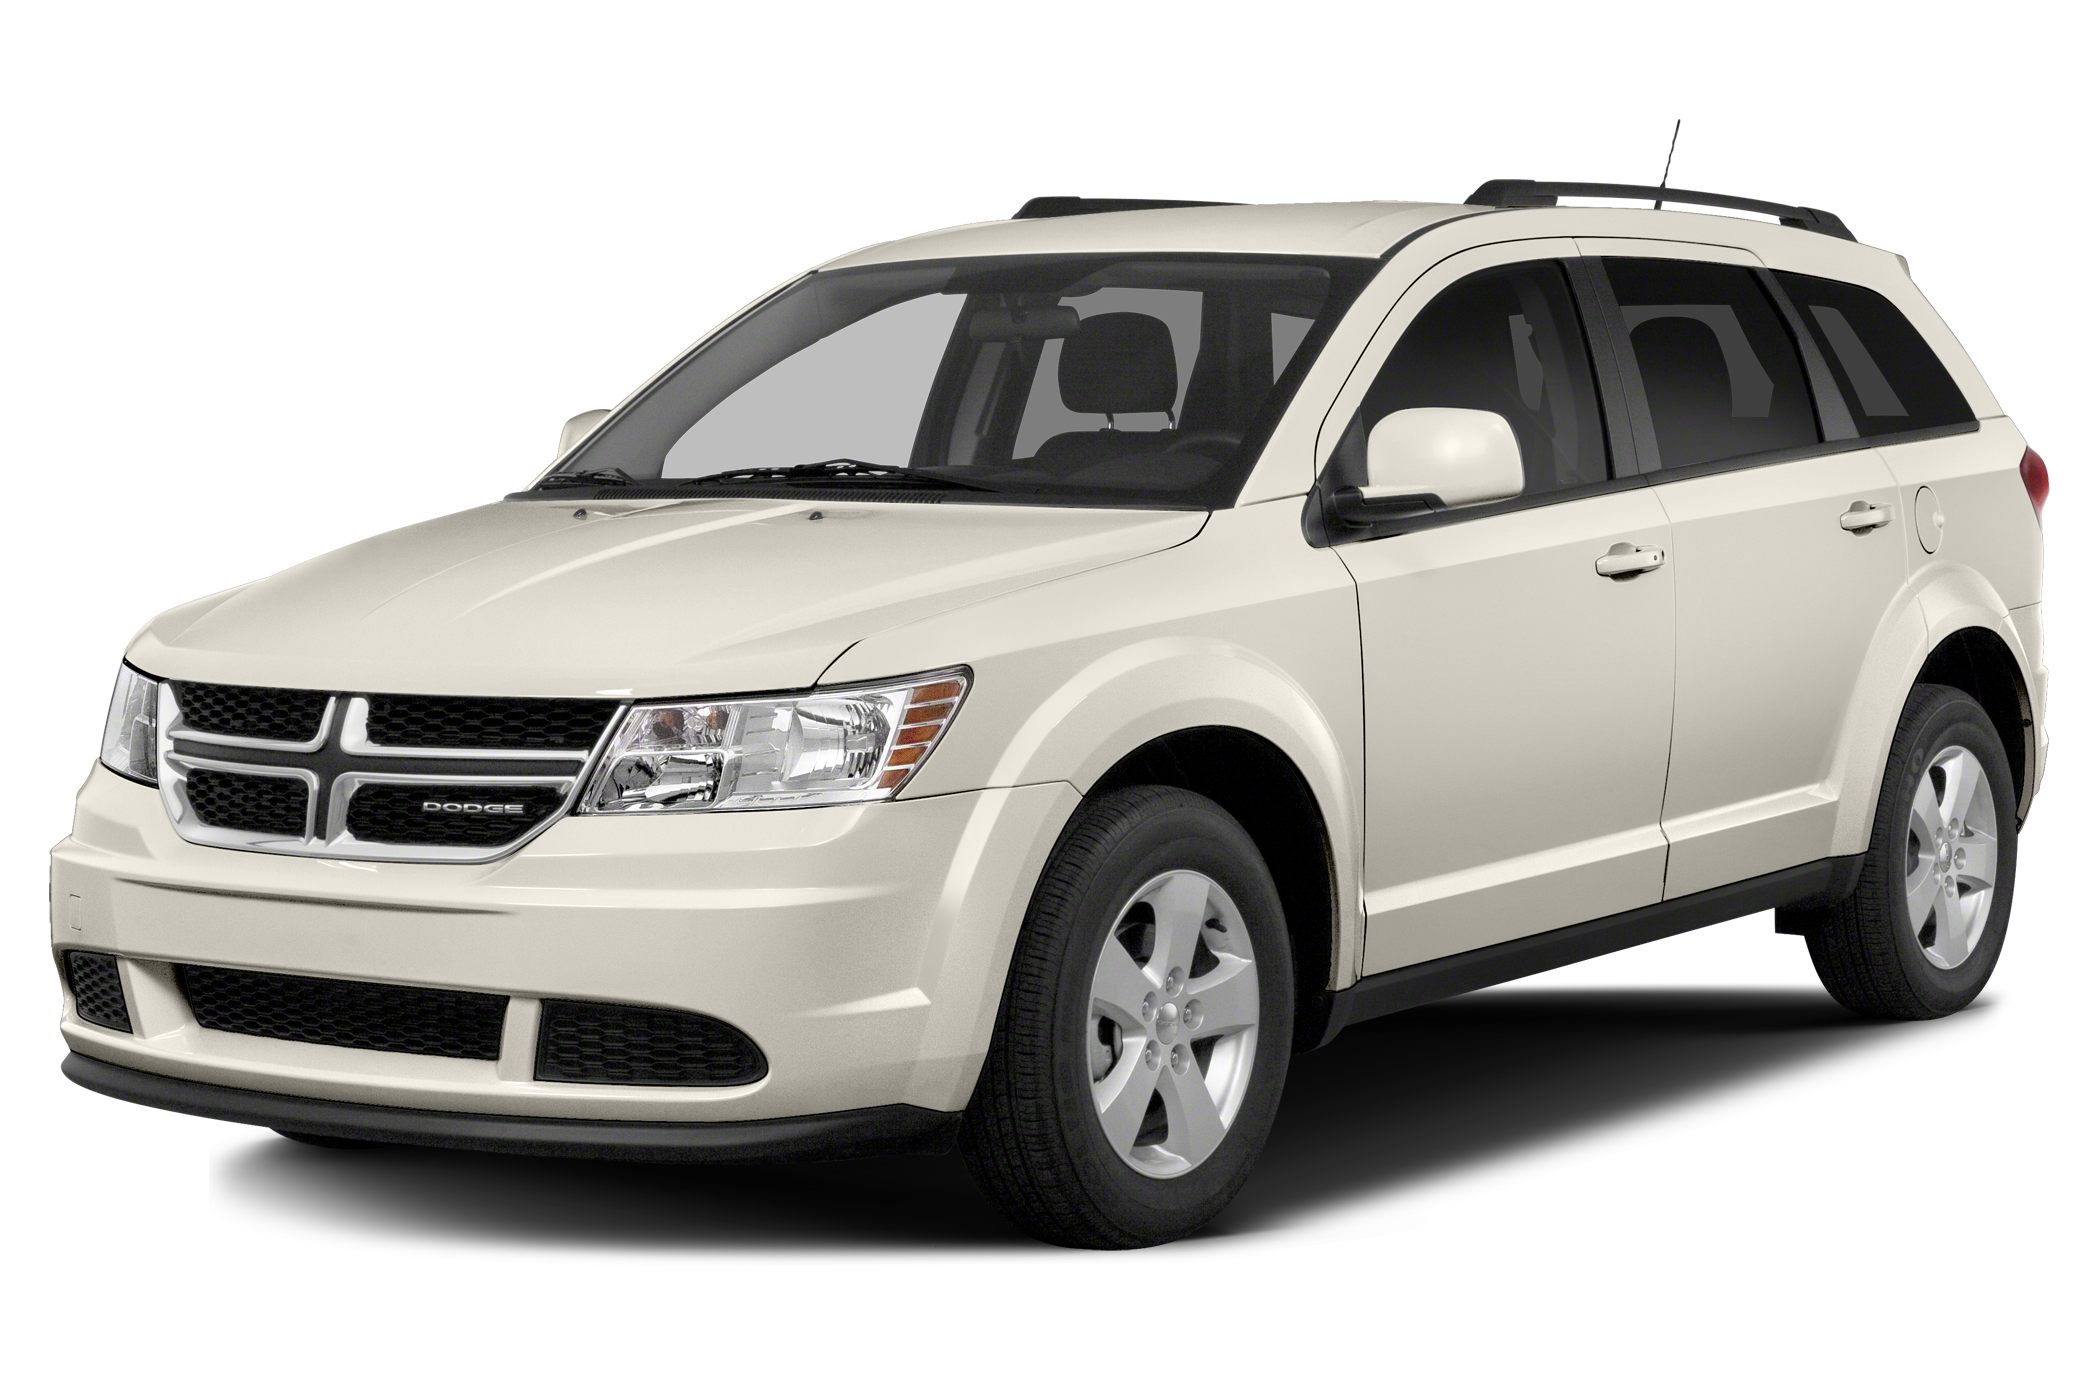 2015 Dodge Journey Limited SUV for sale in Spokane for $28,478 with 0 miles